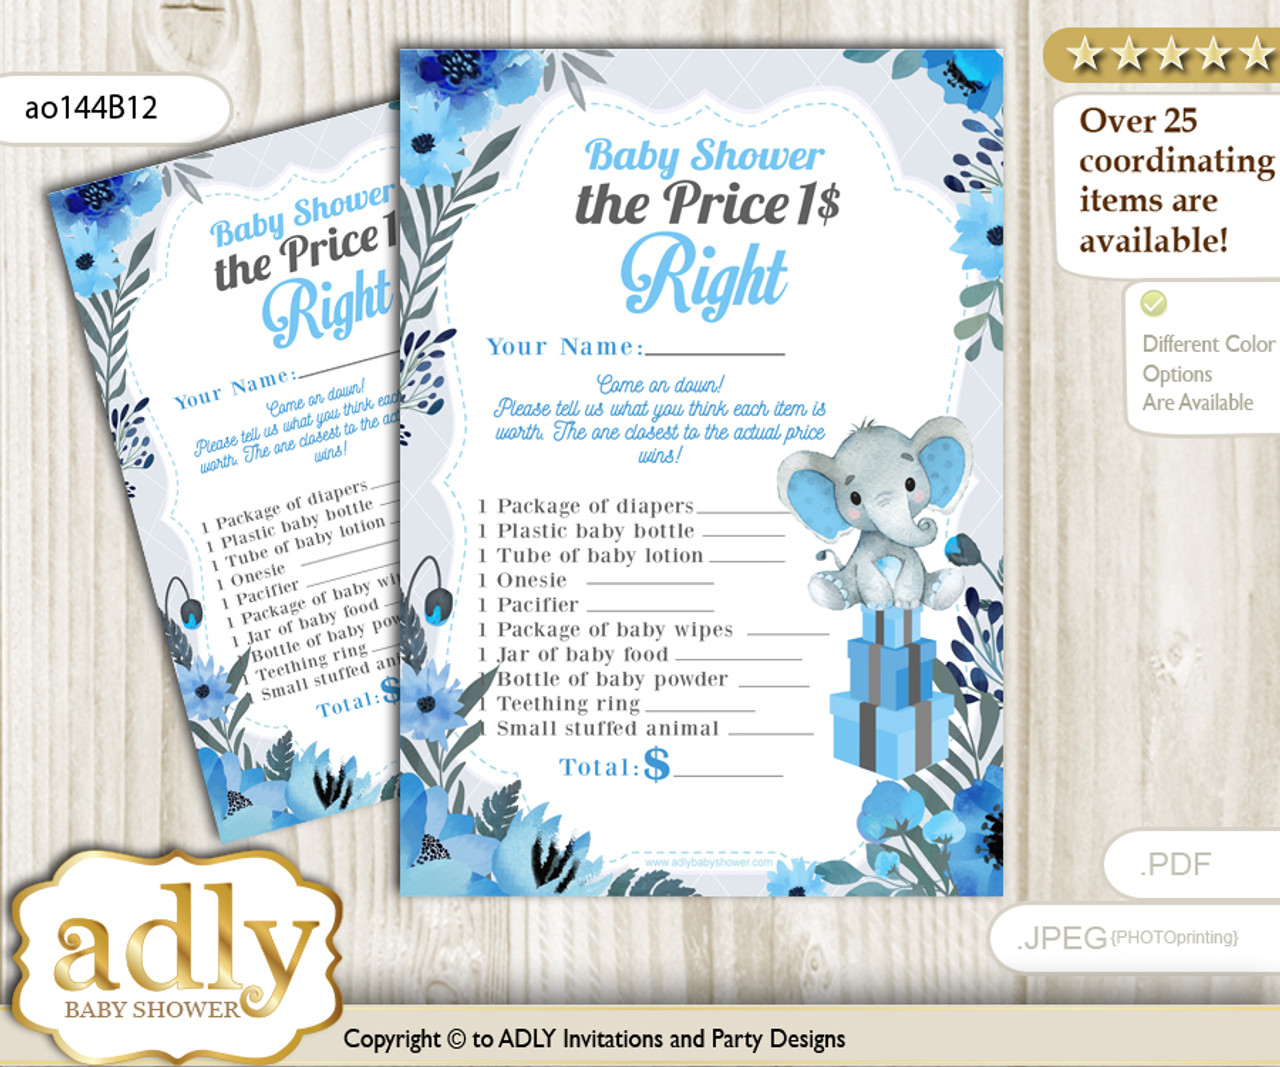 photograph relating to Printable Elephant Baby Shower referred to as Printable Elephant Boy Value is Straight Match Card for Youngster Boy Shower, Blue Grey, Floral